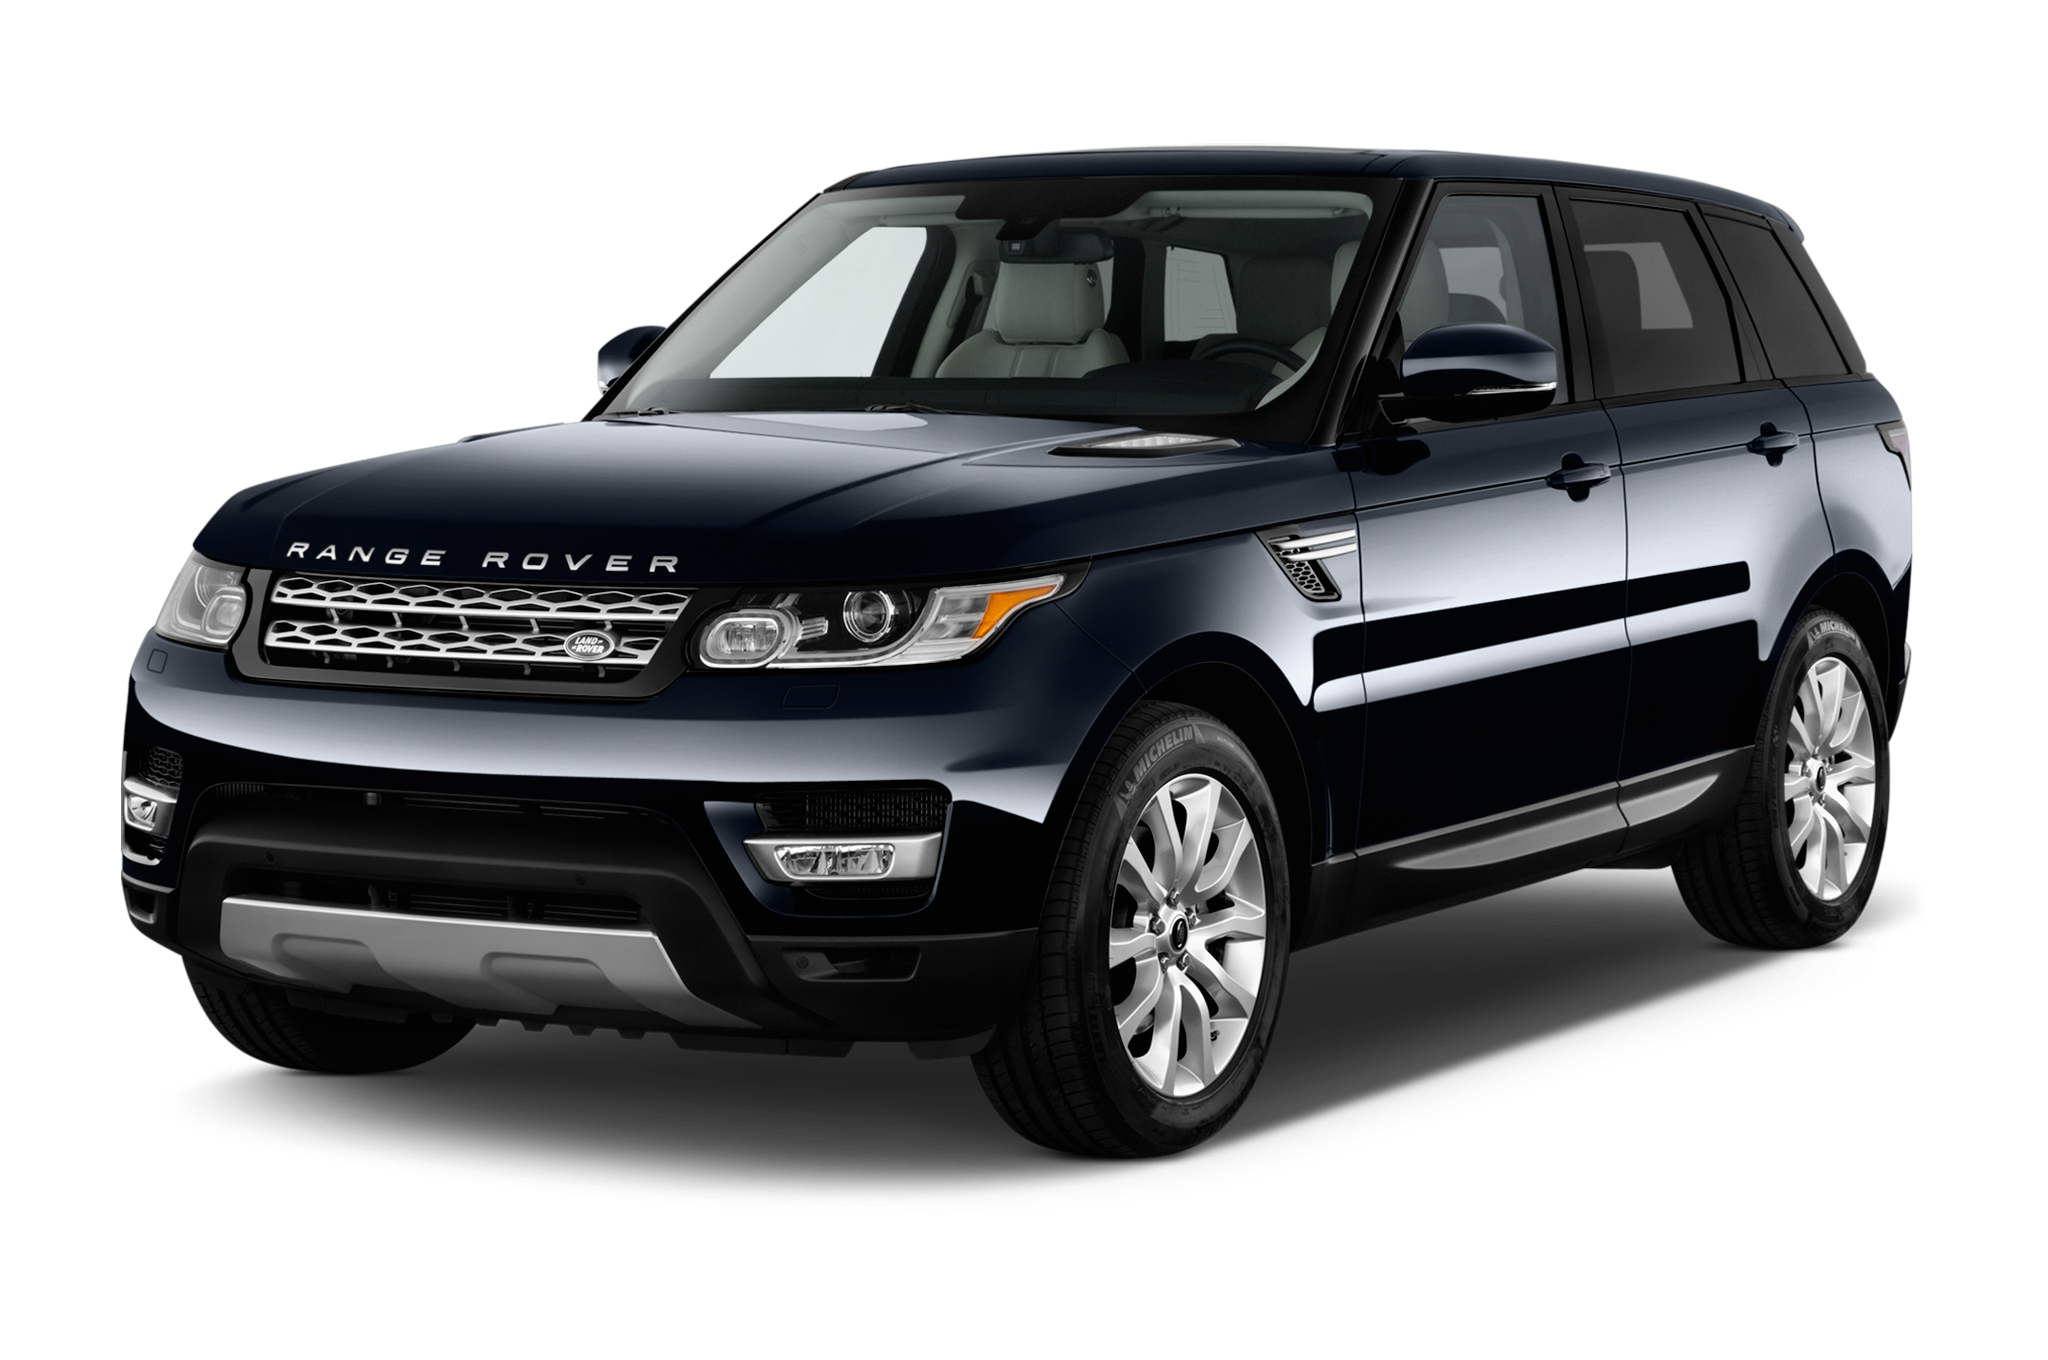 2014 land rover range rover sport reviews and rating | motortrend